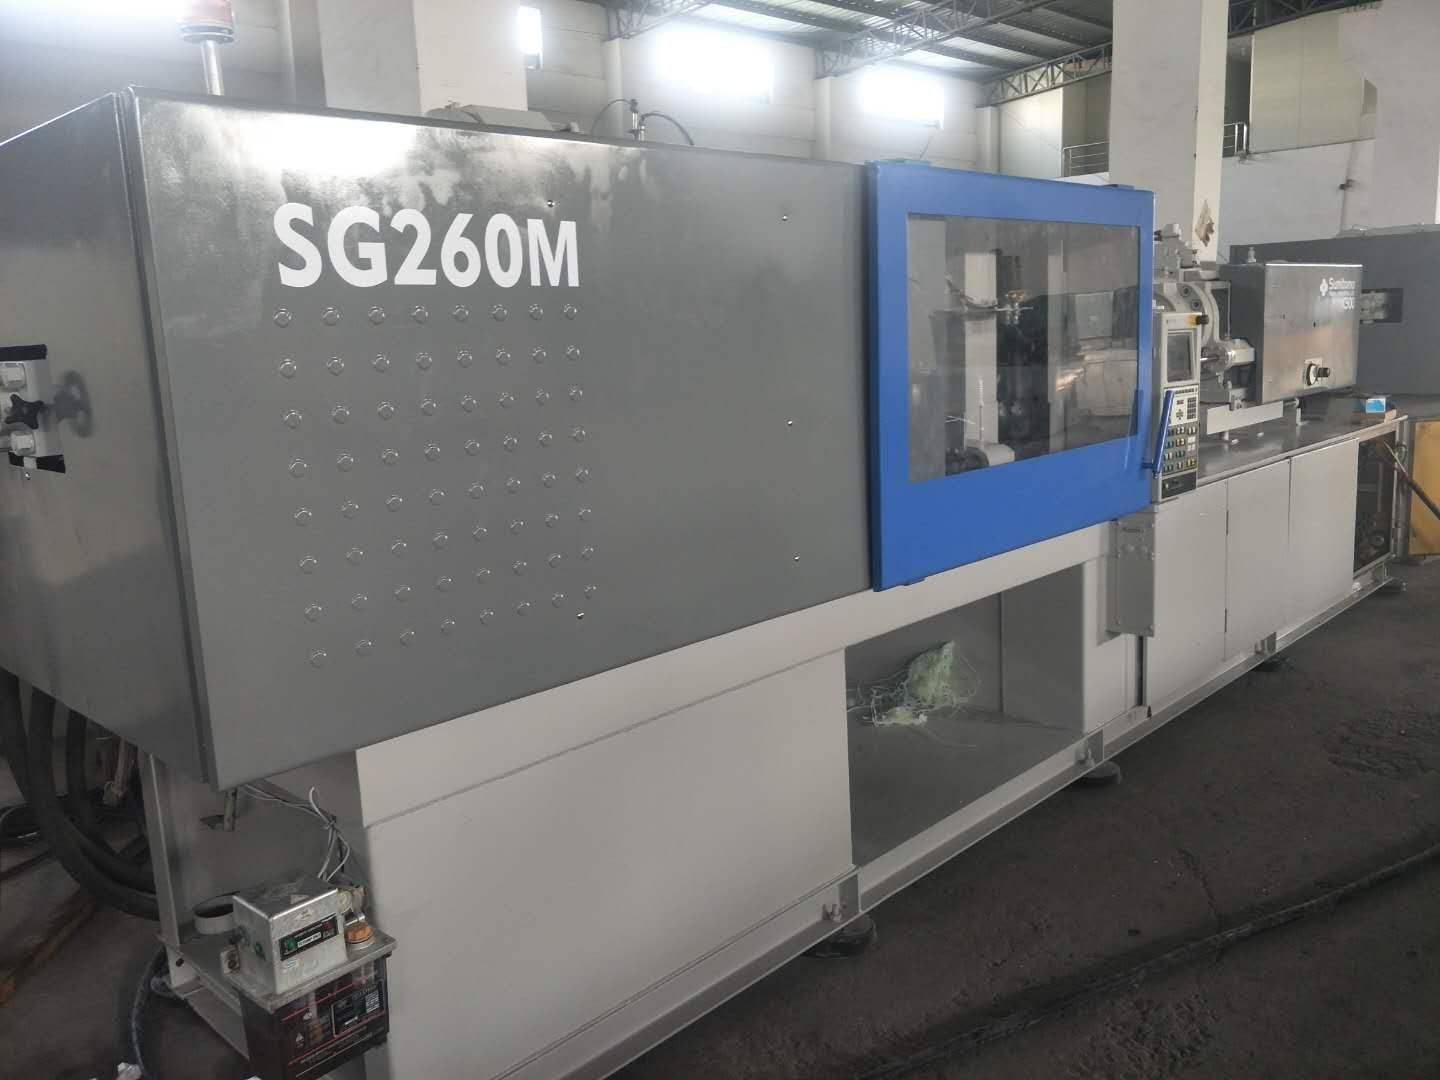 Sumitomo 260t SG260M (high speed) used Injection Molding Machine. Featured Image